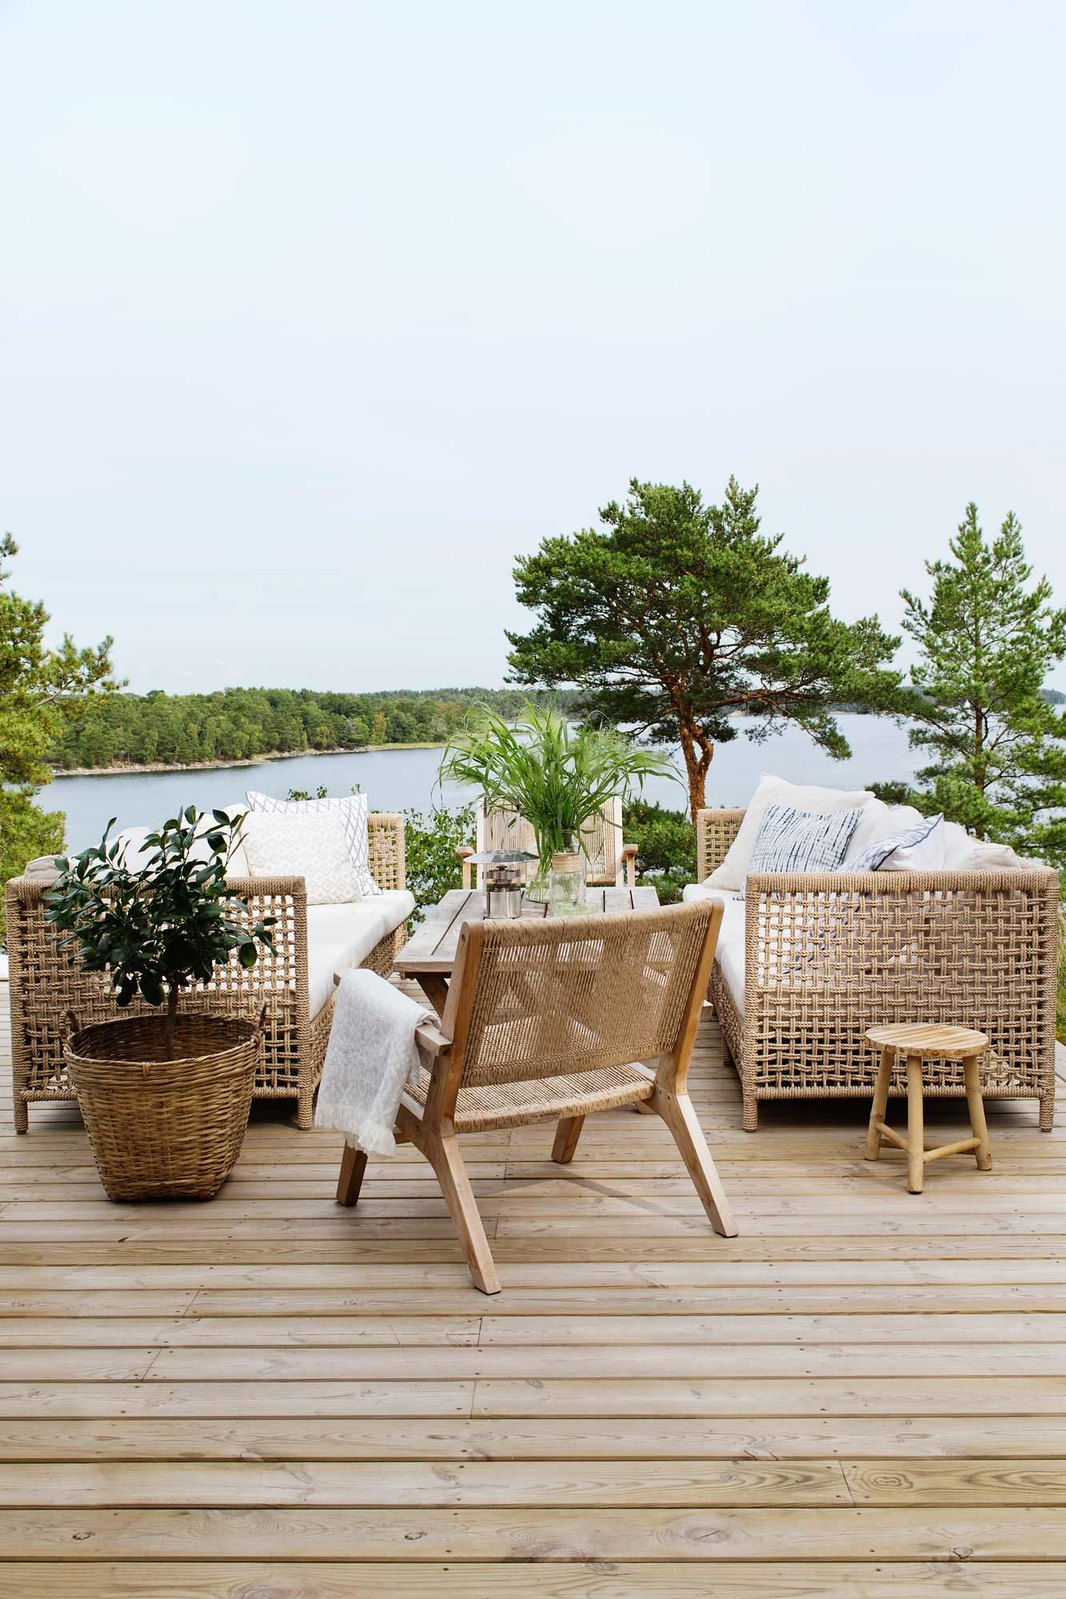 Outdoor Patio Ideas | Outdoor Decor | Outdoor Oasis Deck | Super Chic Backyard Ideas | Outdoor Space Inspiration | Dream Backyard | 5 Tips for Creating a Cozy Outdoor Oasis at Your Home | Backyards that Inspire Me | Porch | Patio Renovation | Patio Remodel | Best Decorated Decks on Pinterest | Boho Patio Inspiration | Outdoor Furniture Inspiration | Neutral Rattan Outdoor Decor | Deck Overlooking Lake